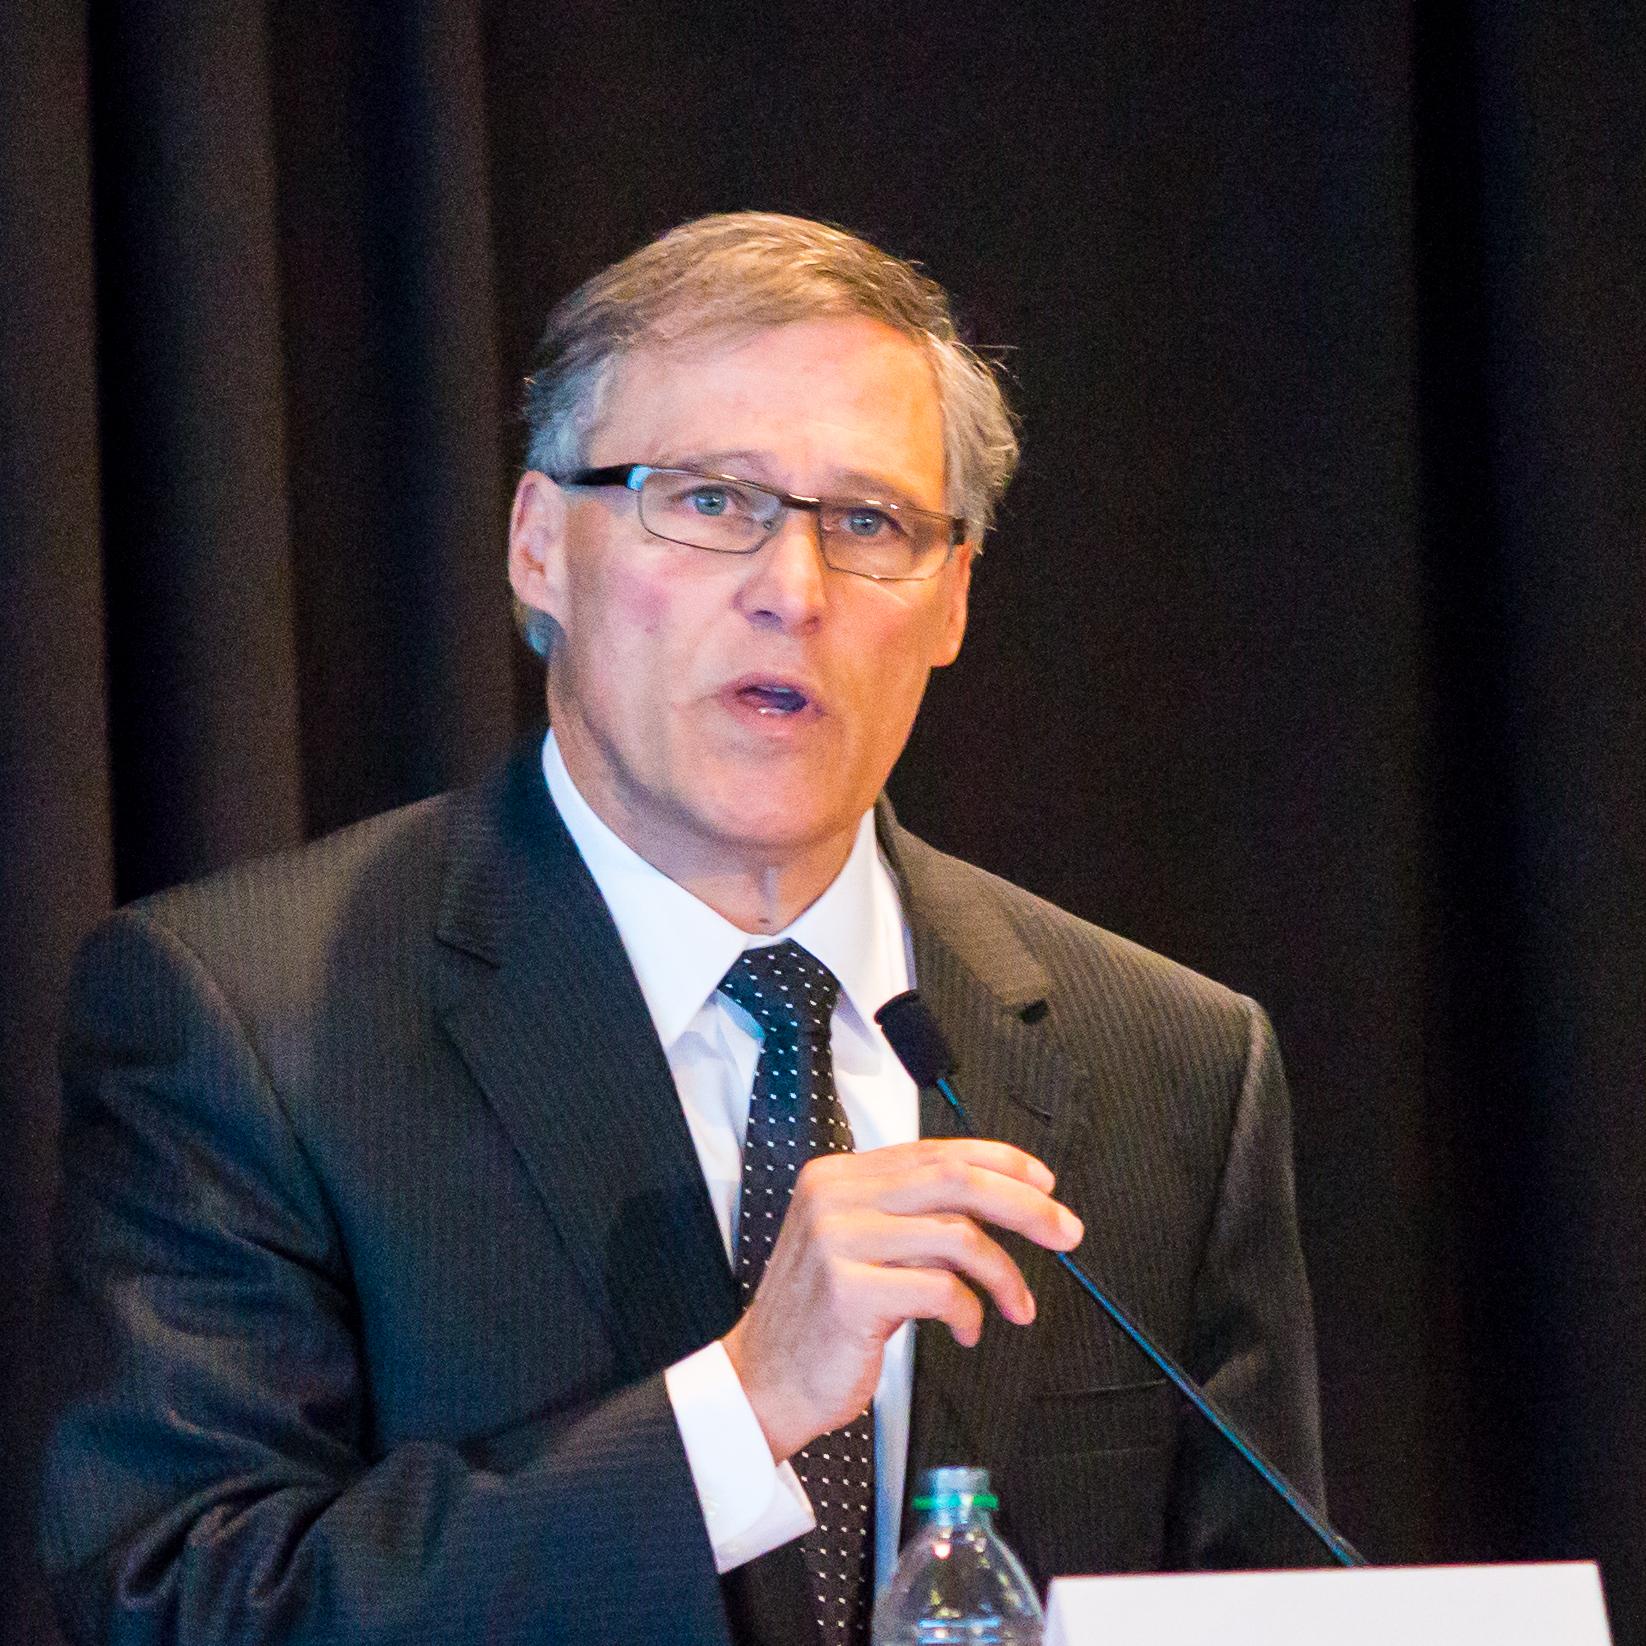 Governor Jay Inslee addressing the WCTA